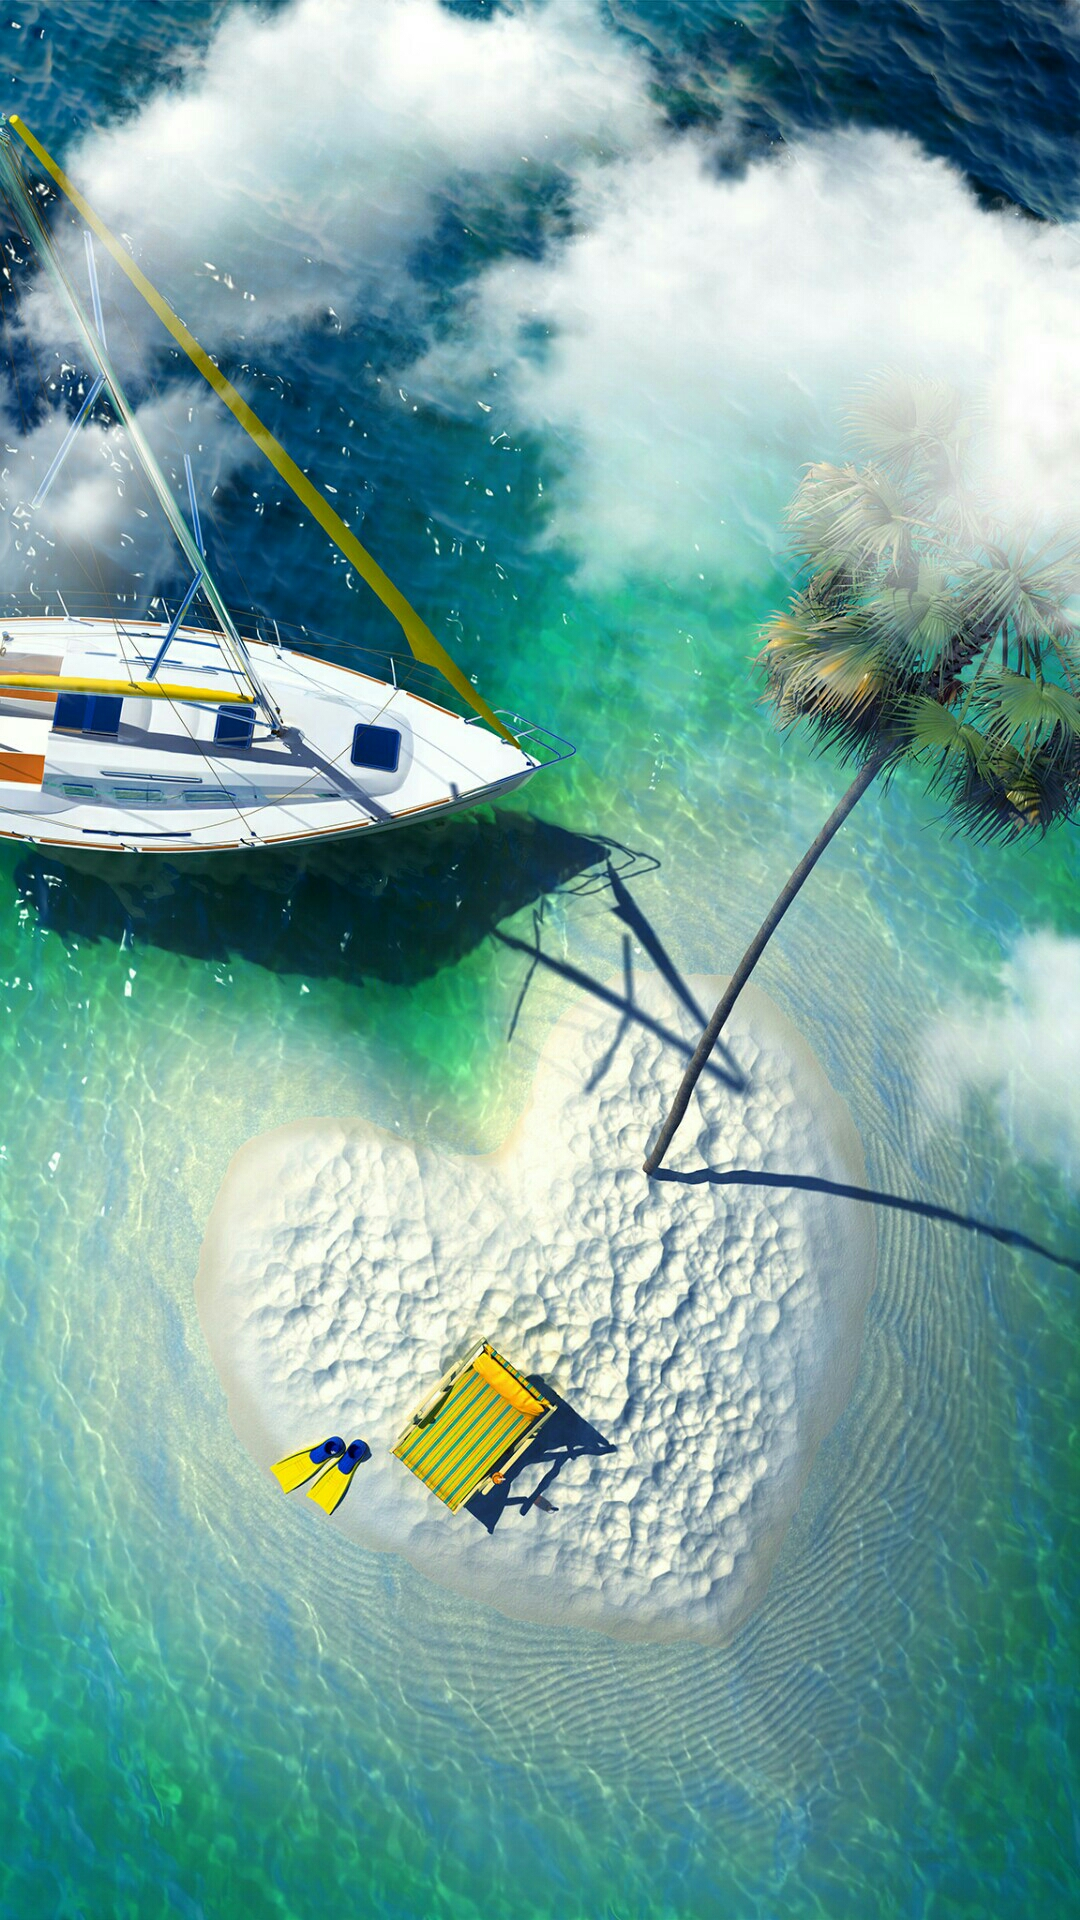 iPhone wallpaper island heart Island